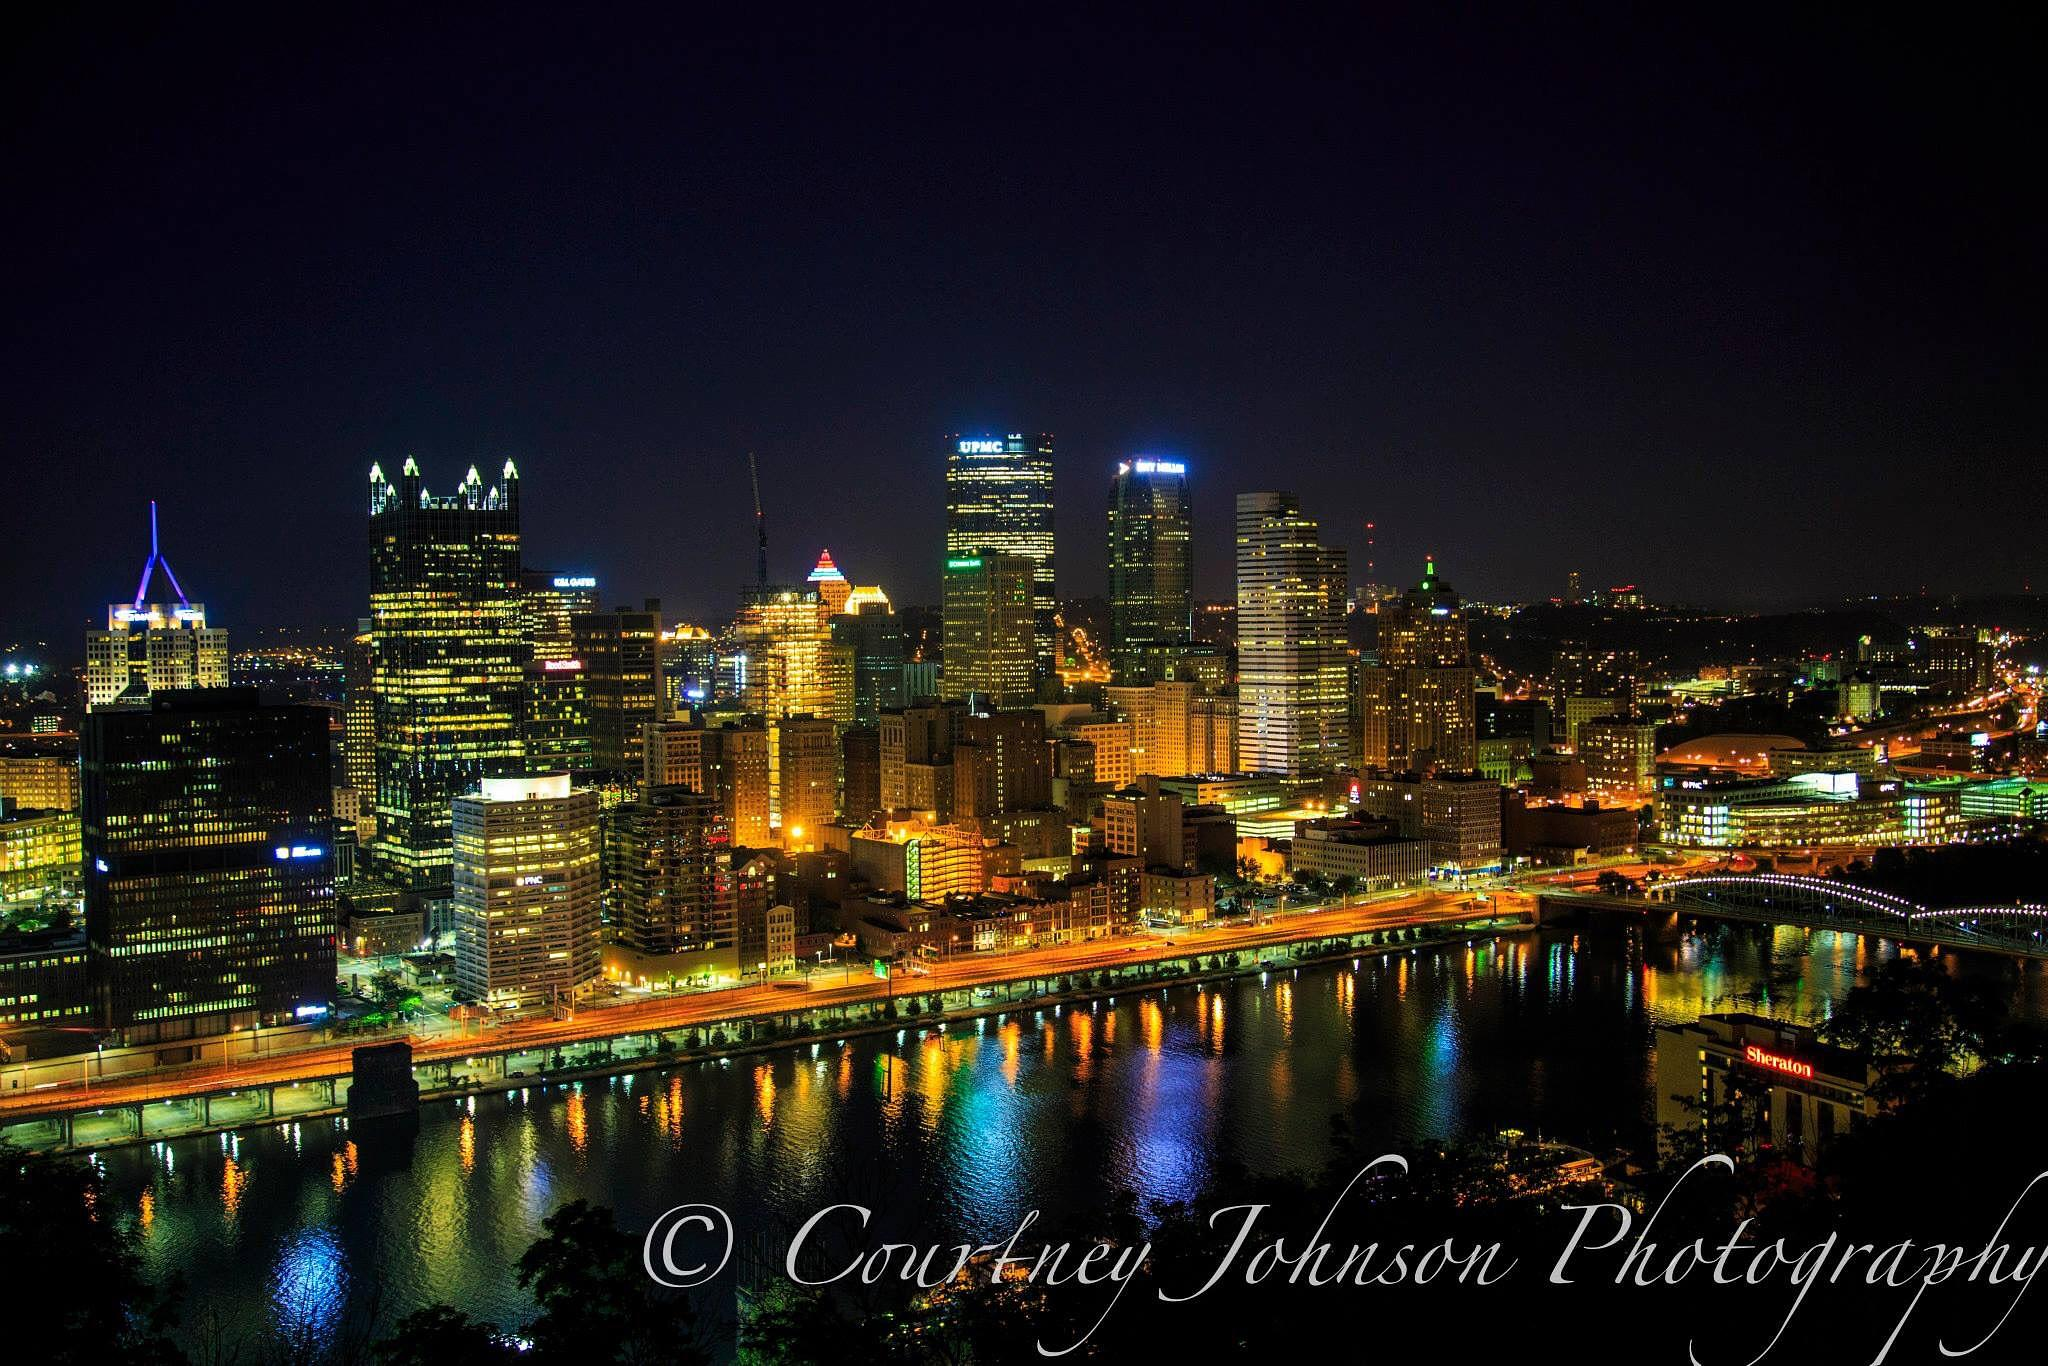 Pittsburgh by Courtney